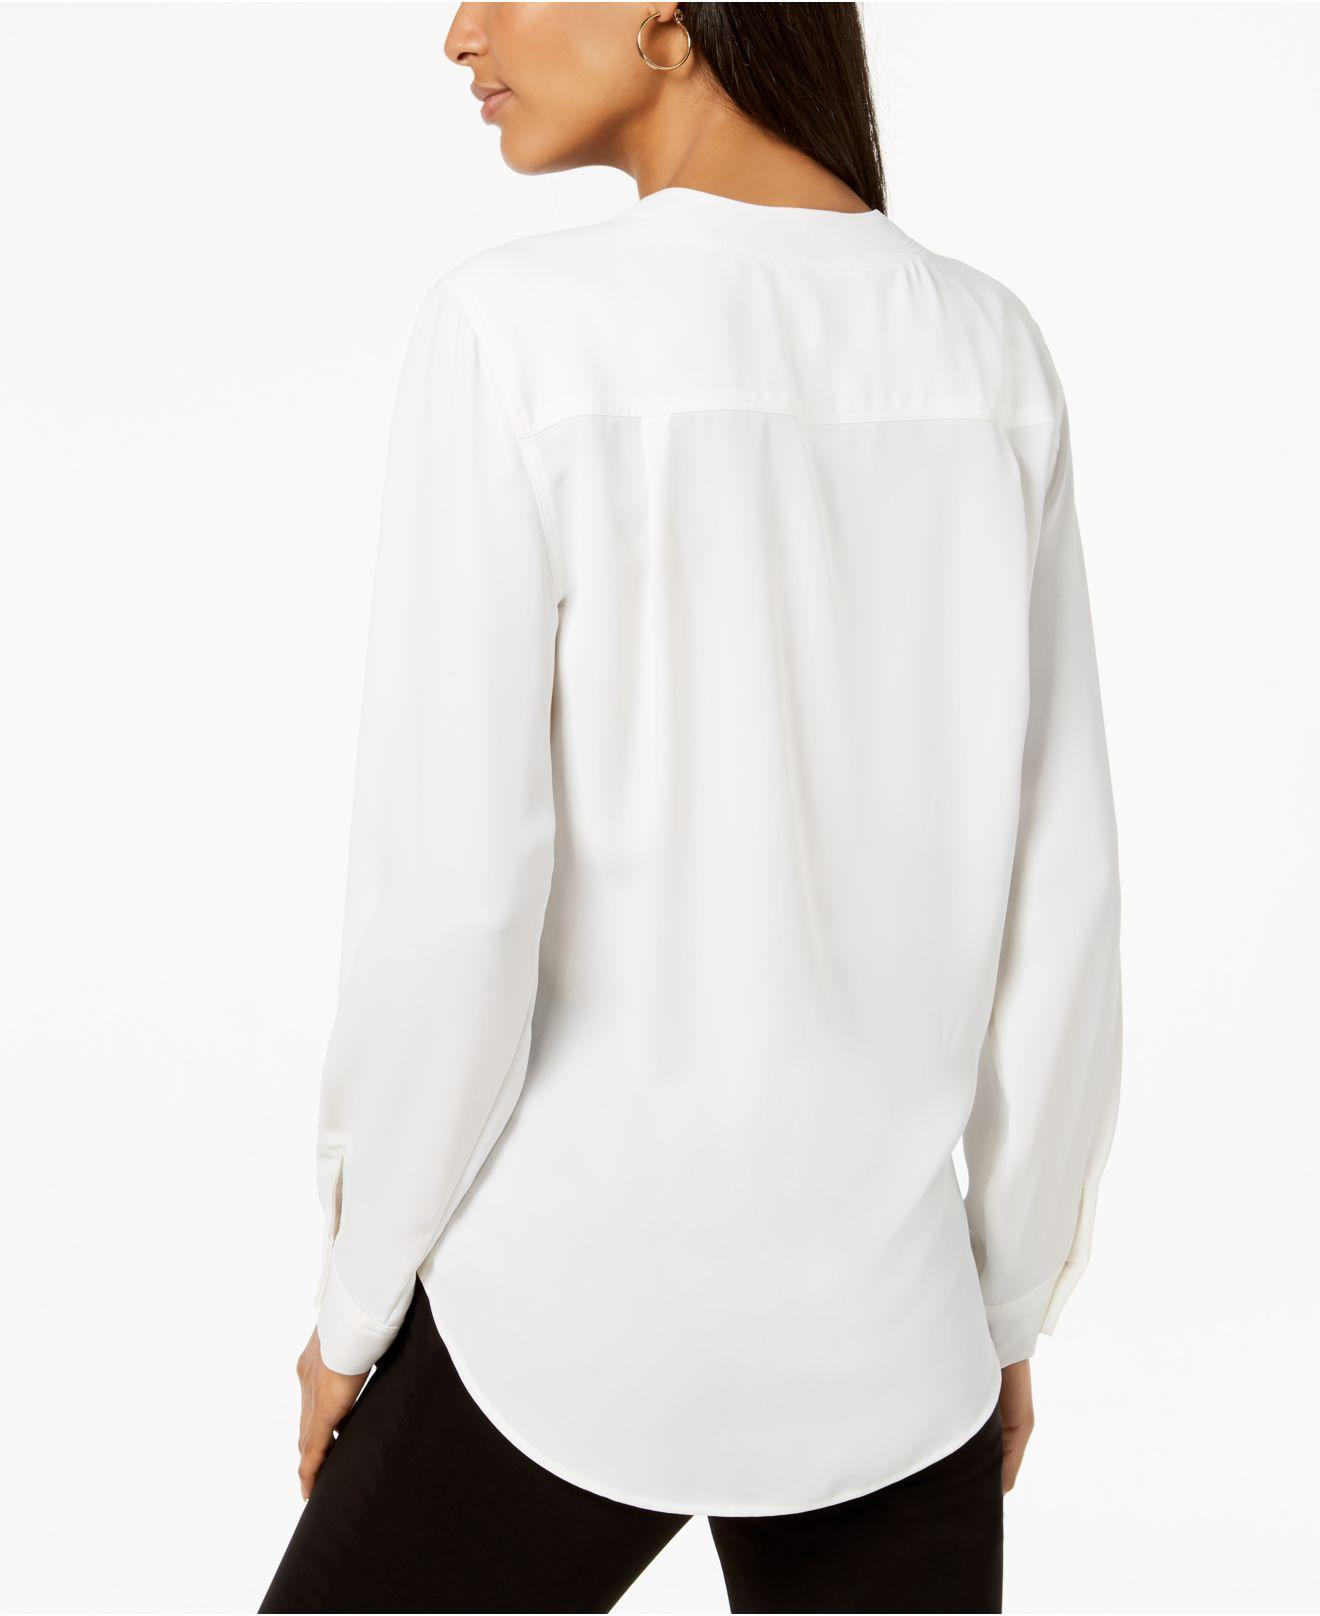 fdea0392eb7725 Lyst - Nine West V-neck Top in White